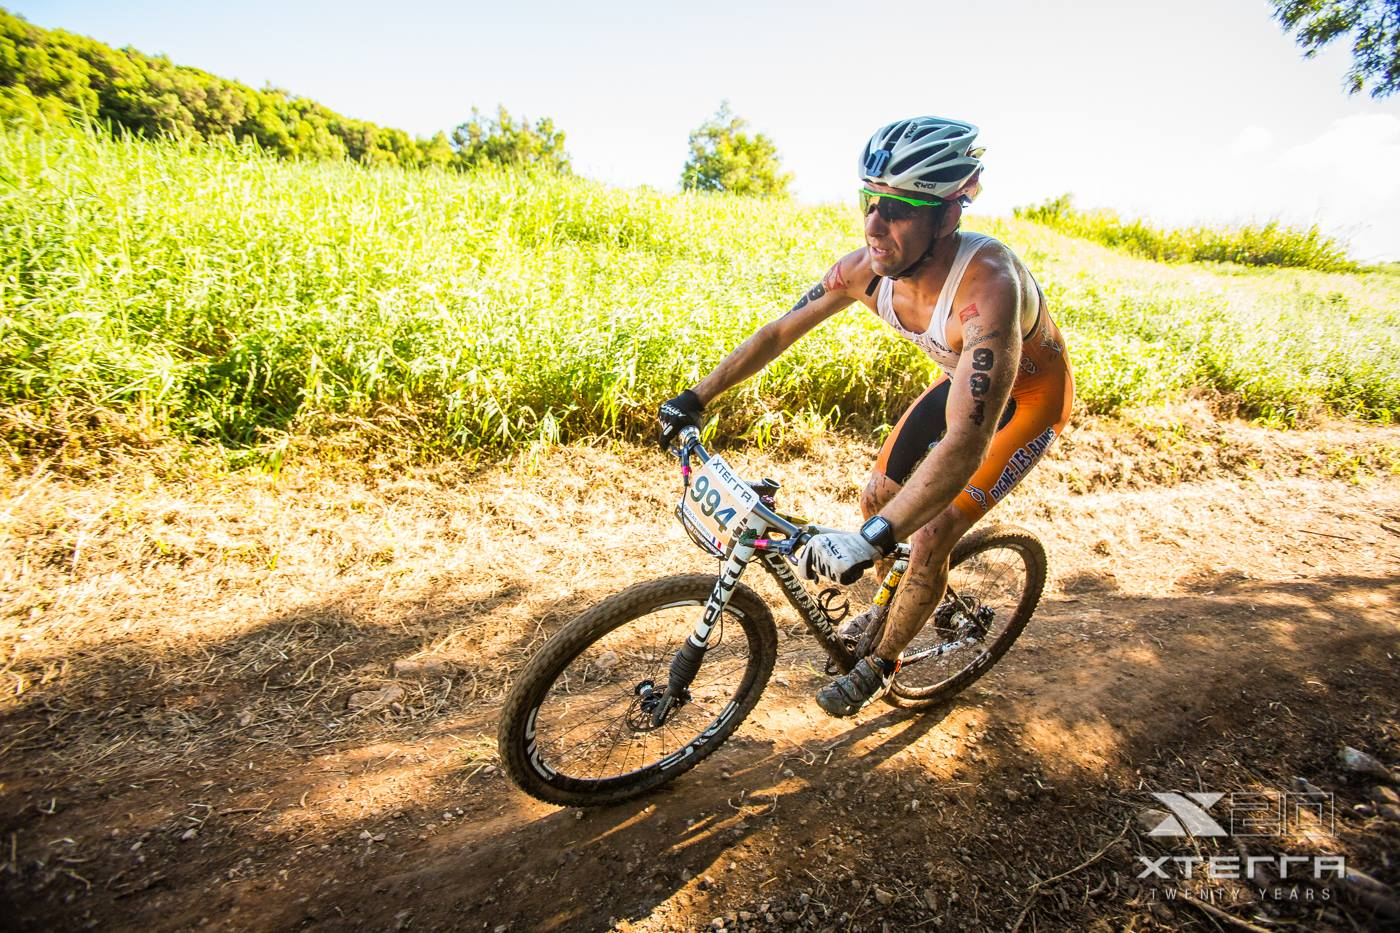 XTERRA_WORLD_CHAMPIONSHIP_2015_00035